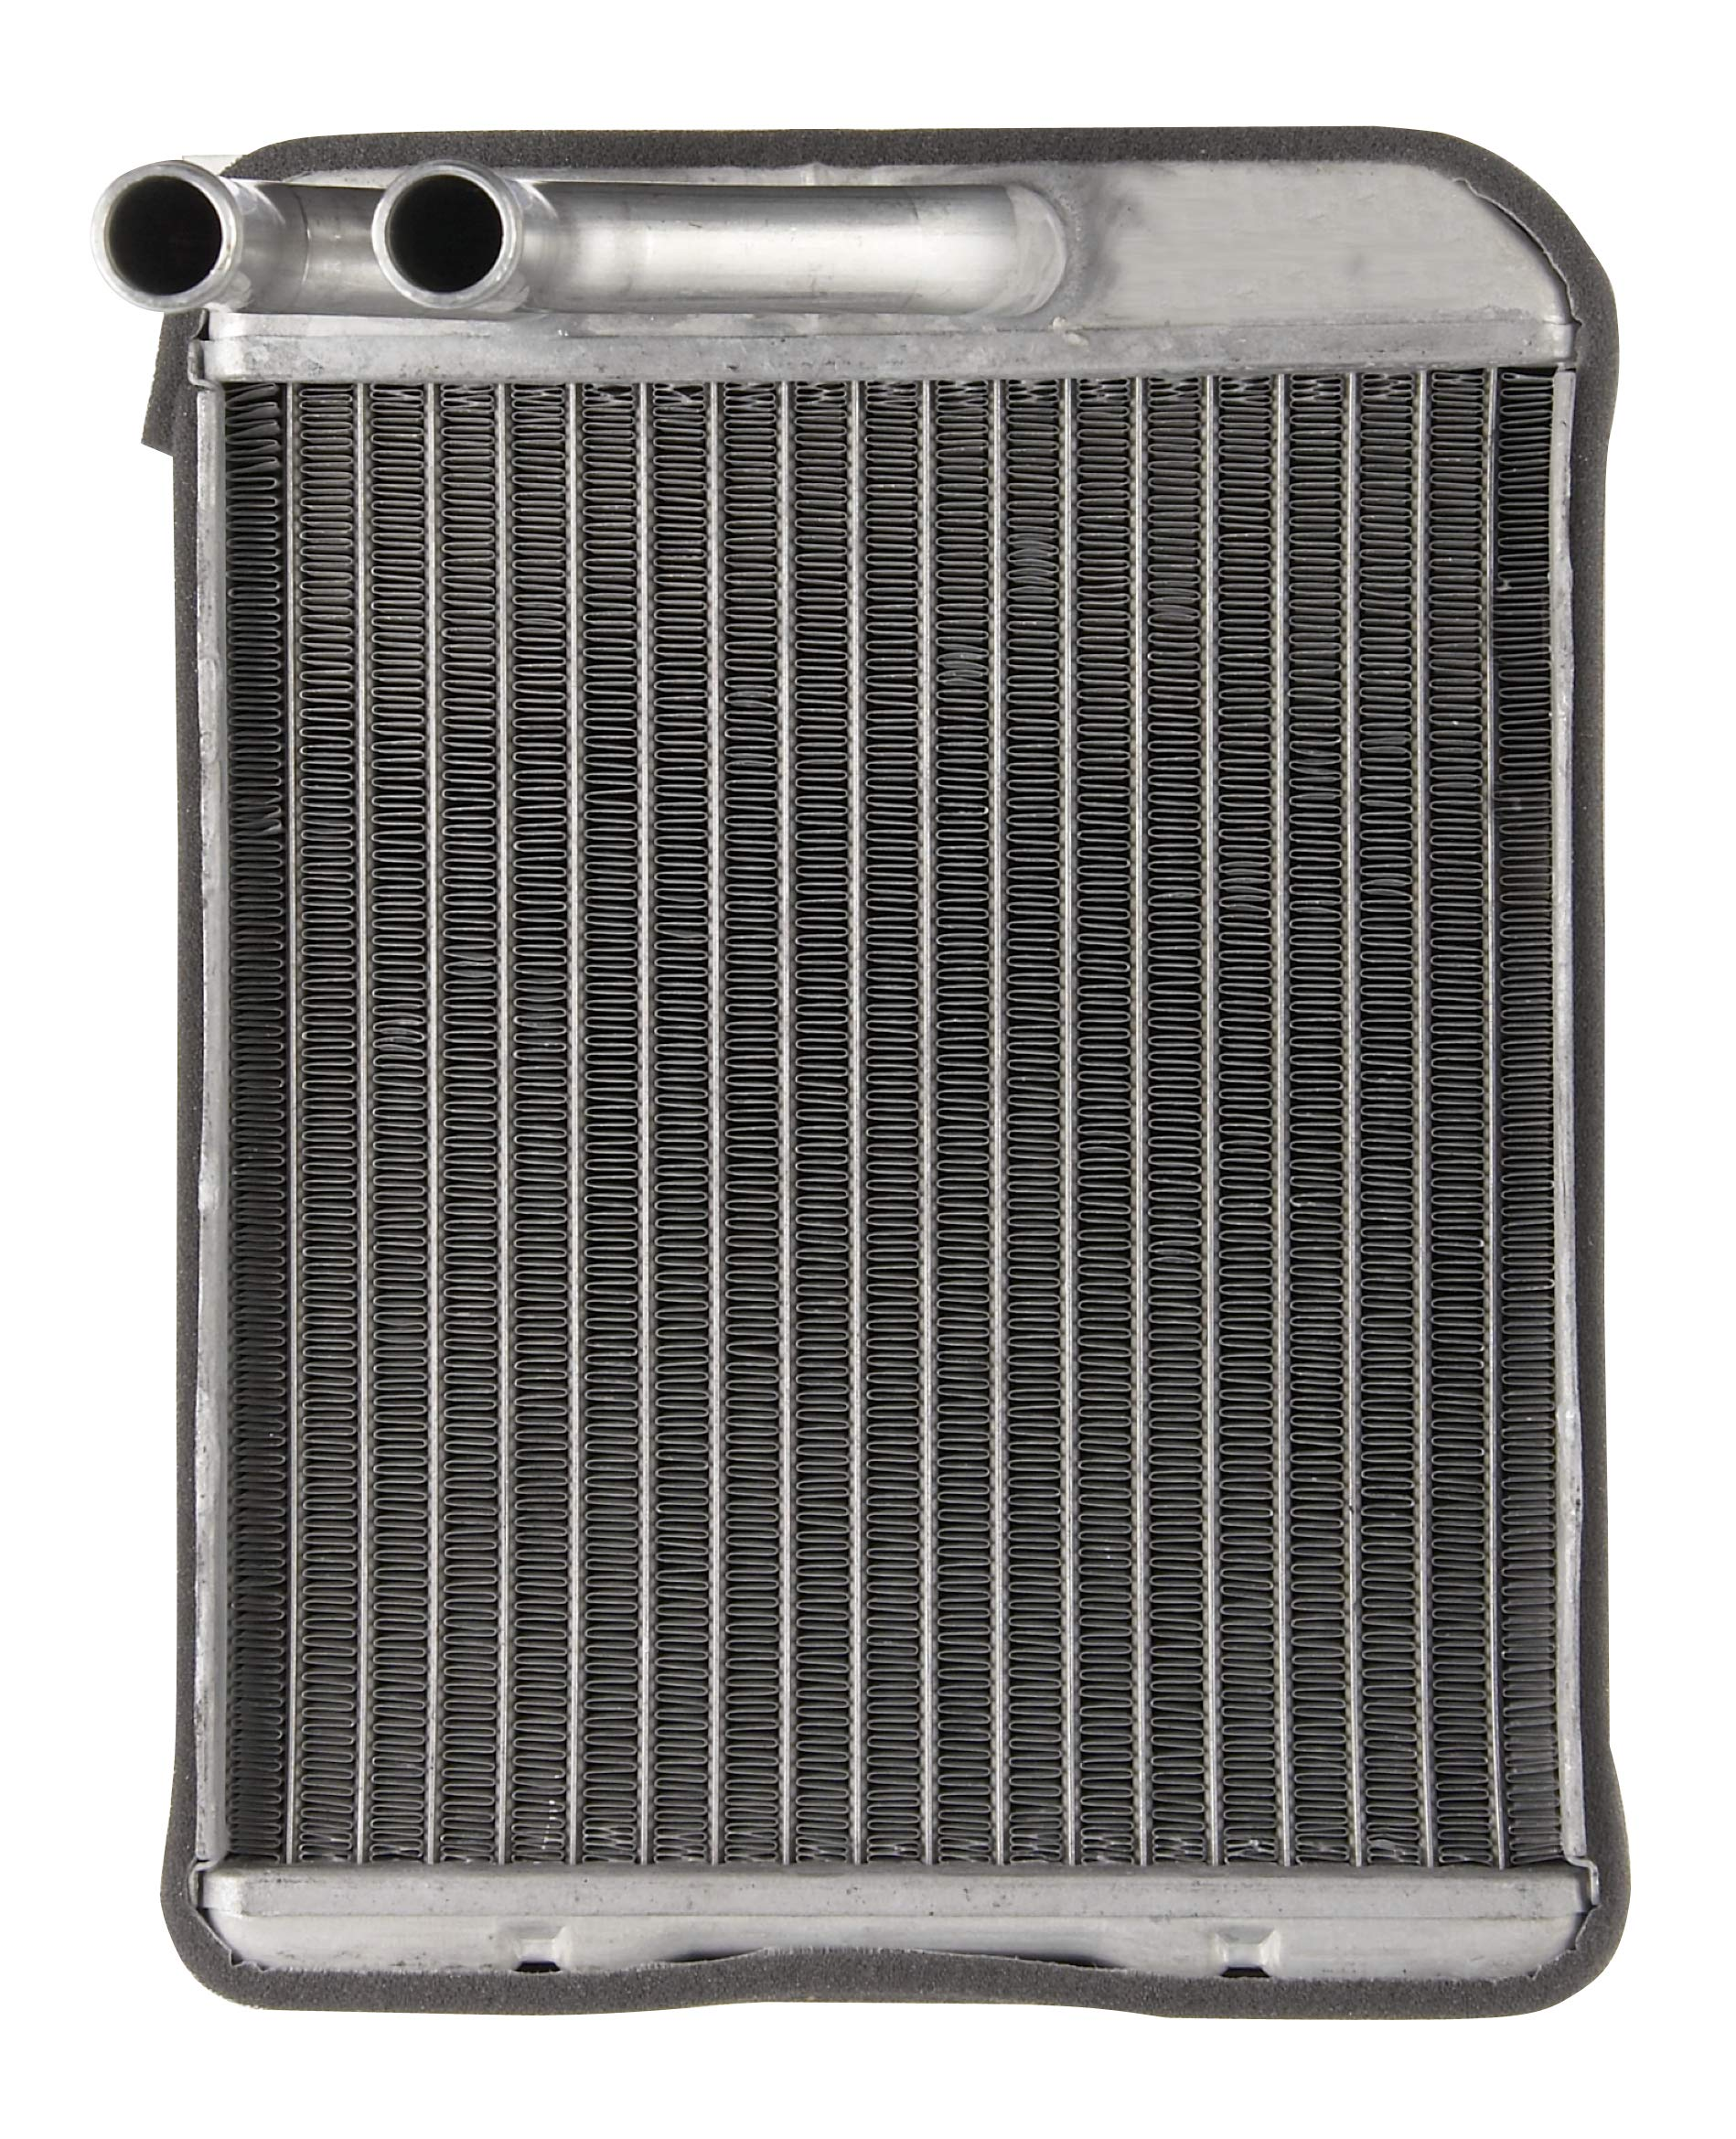 Spectra Premium 94582 Heater Core for Ford Bronce/F Series by Spectra Premium